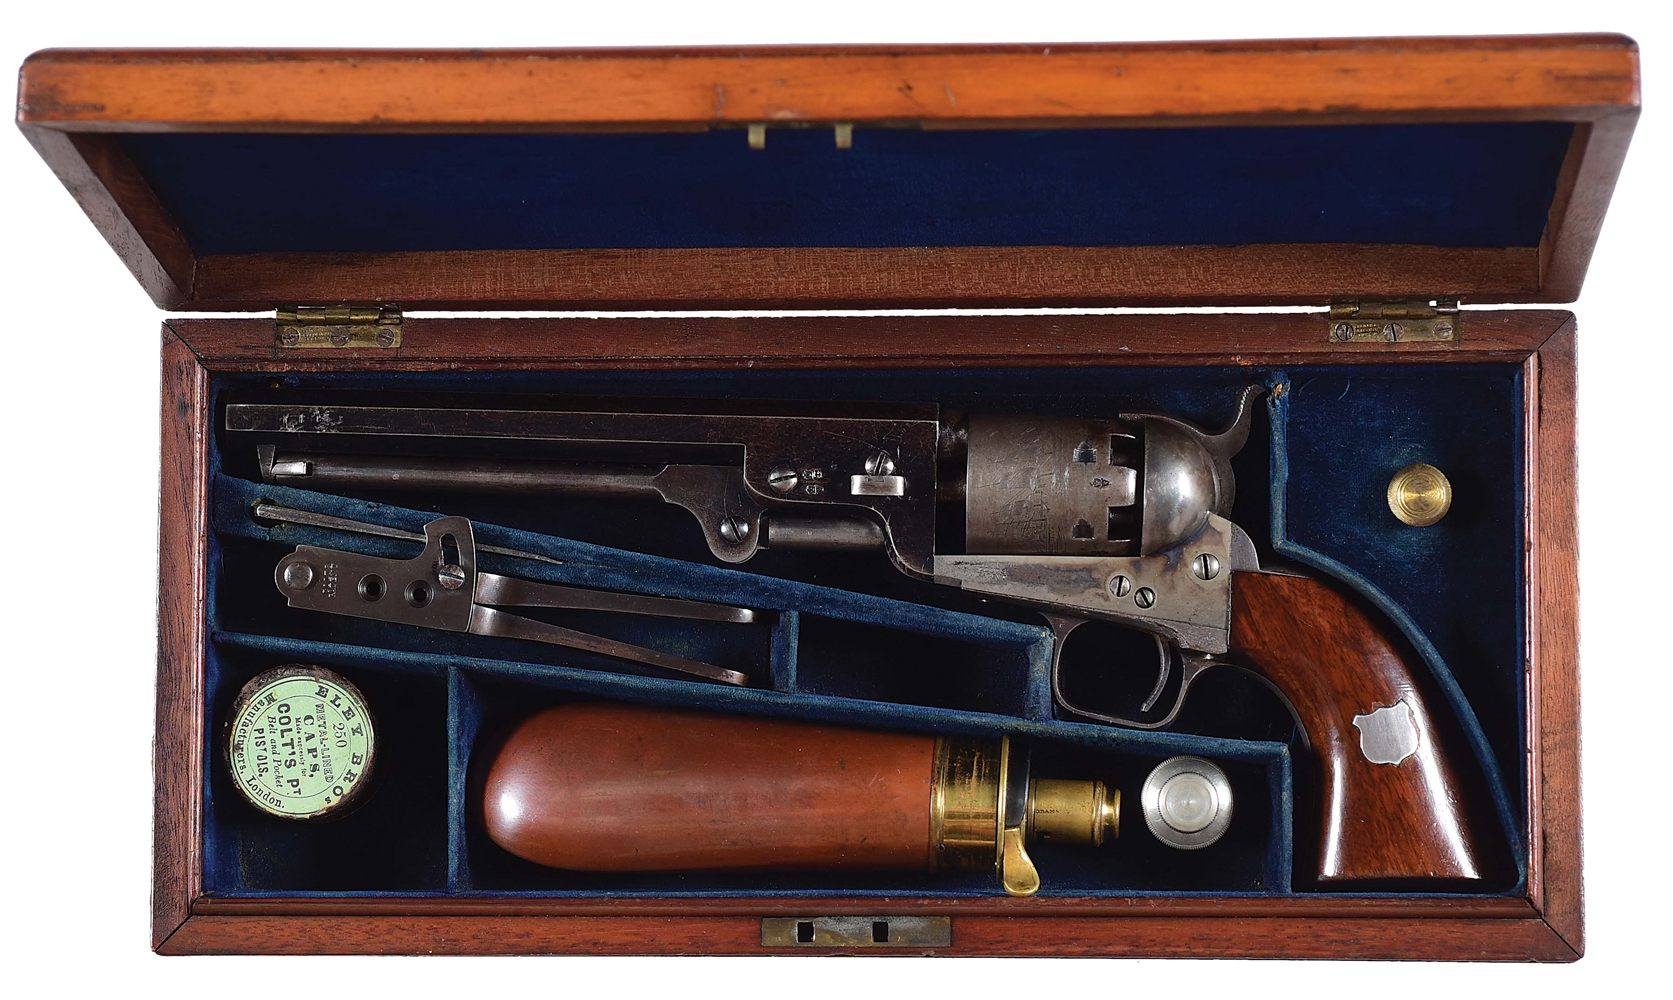 (A) CASED LONDON COLT 1851 NAVY PERCUSSION PISTOL.